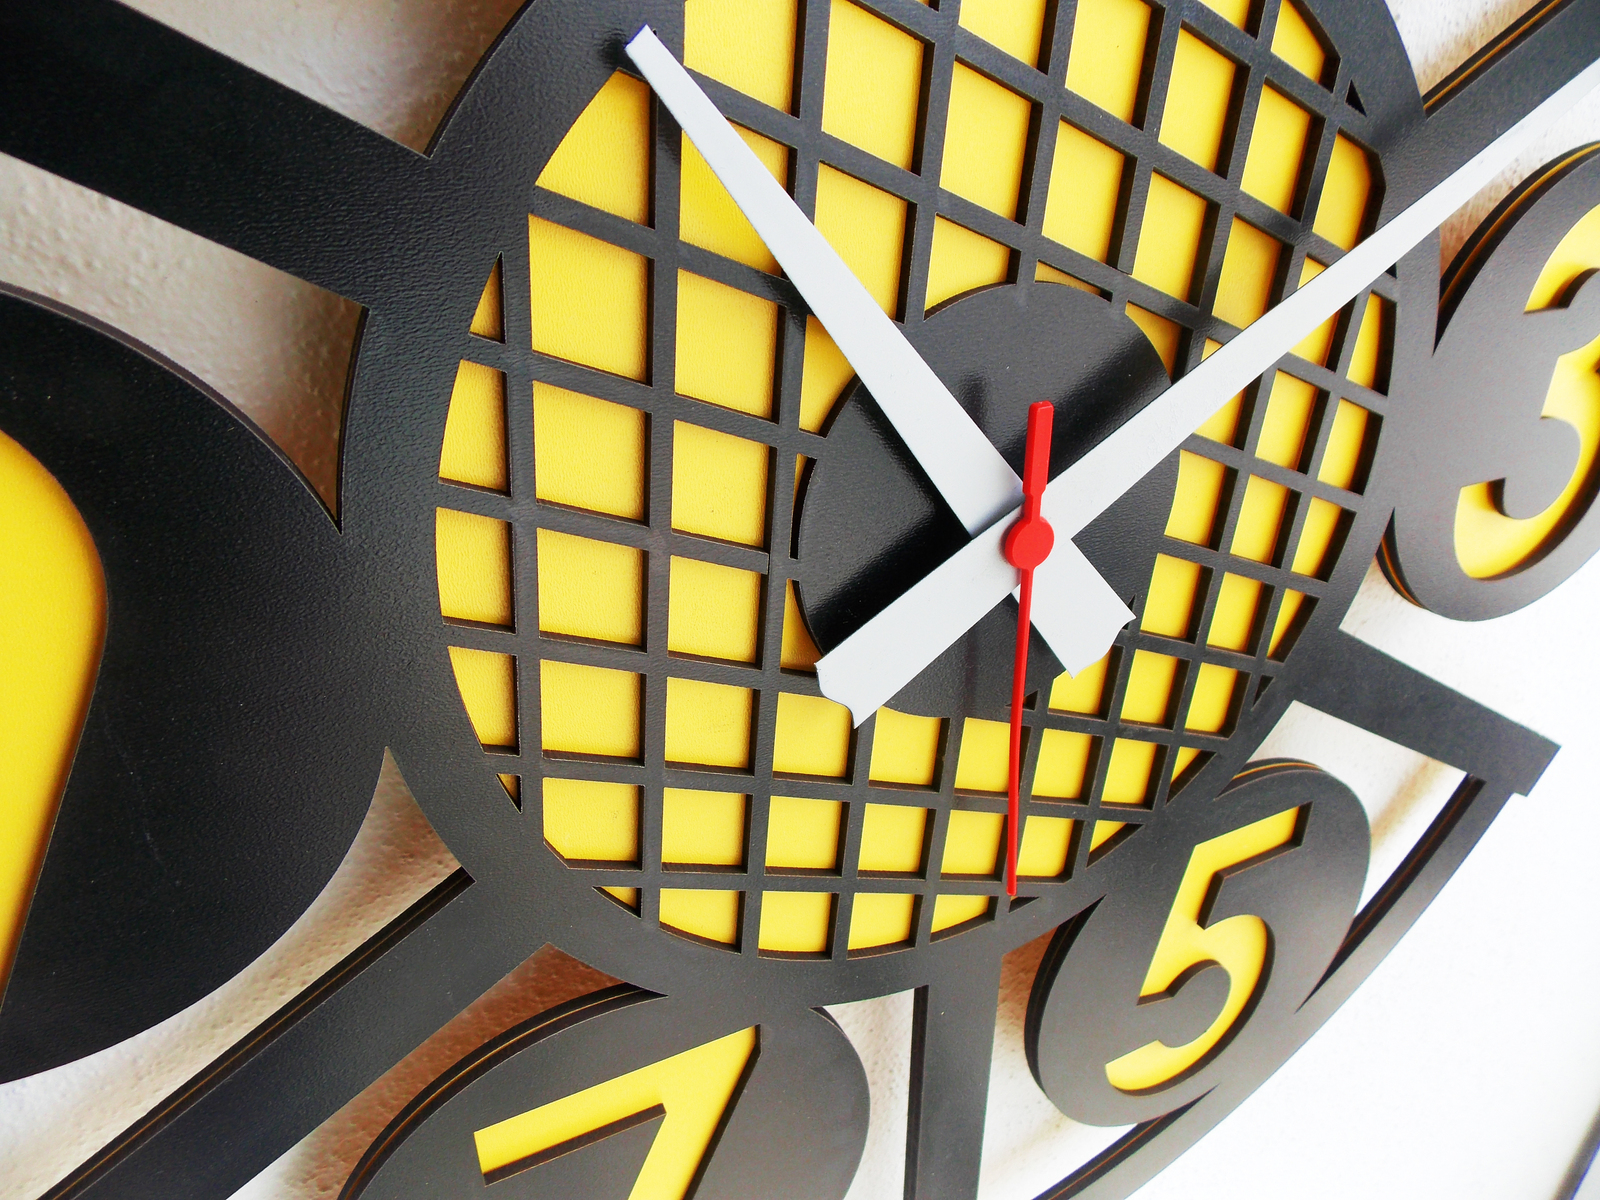 Large Wall Clock,Modern Wall Clock,Wooden Wall Clock,Decorative Clock